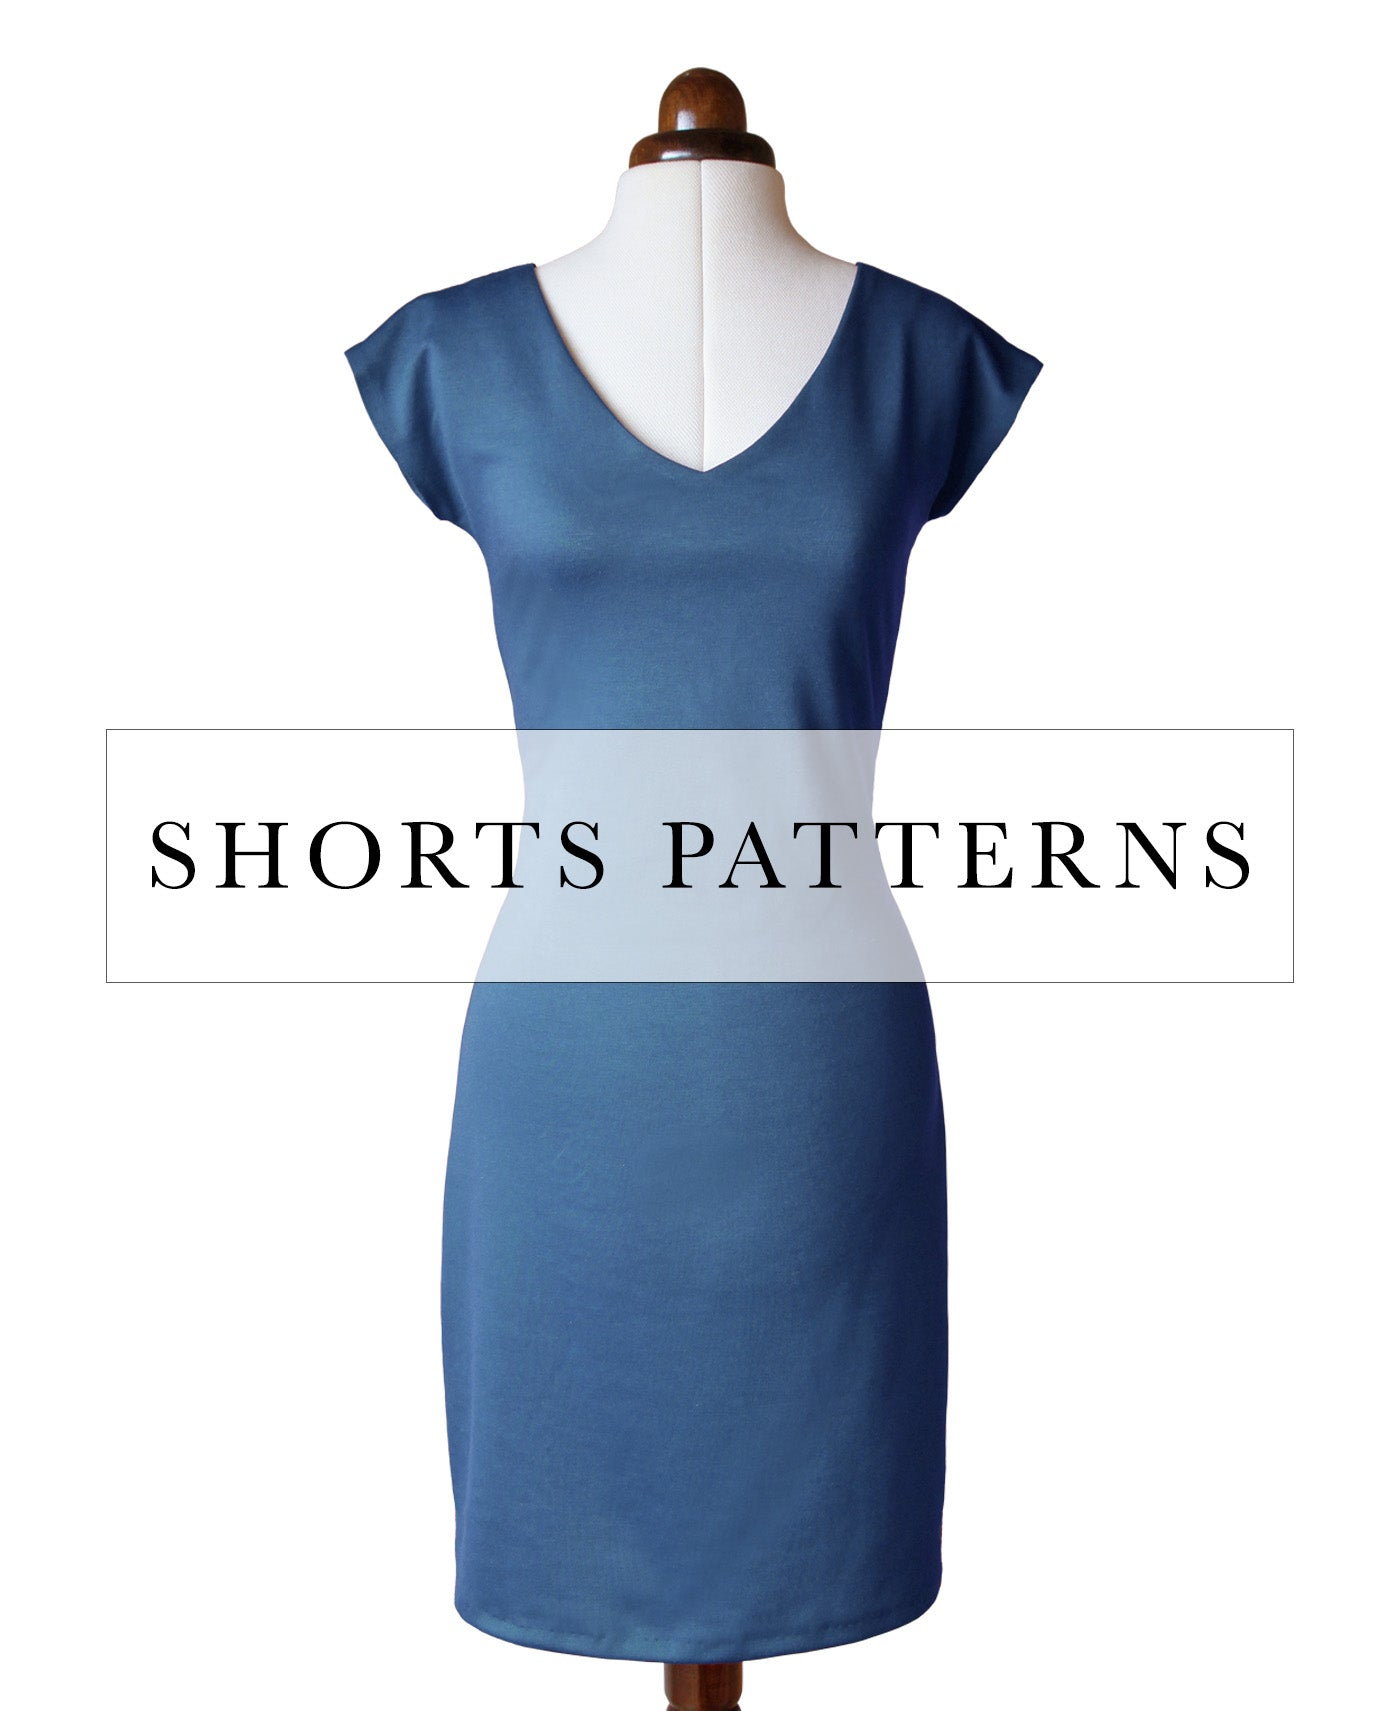 shorts patterns